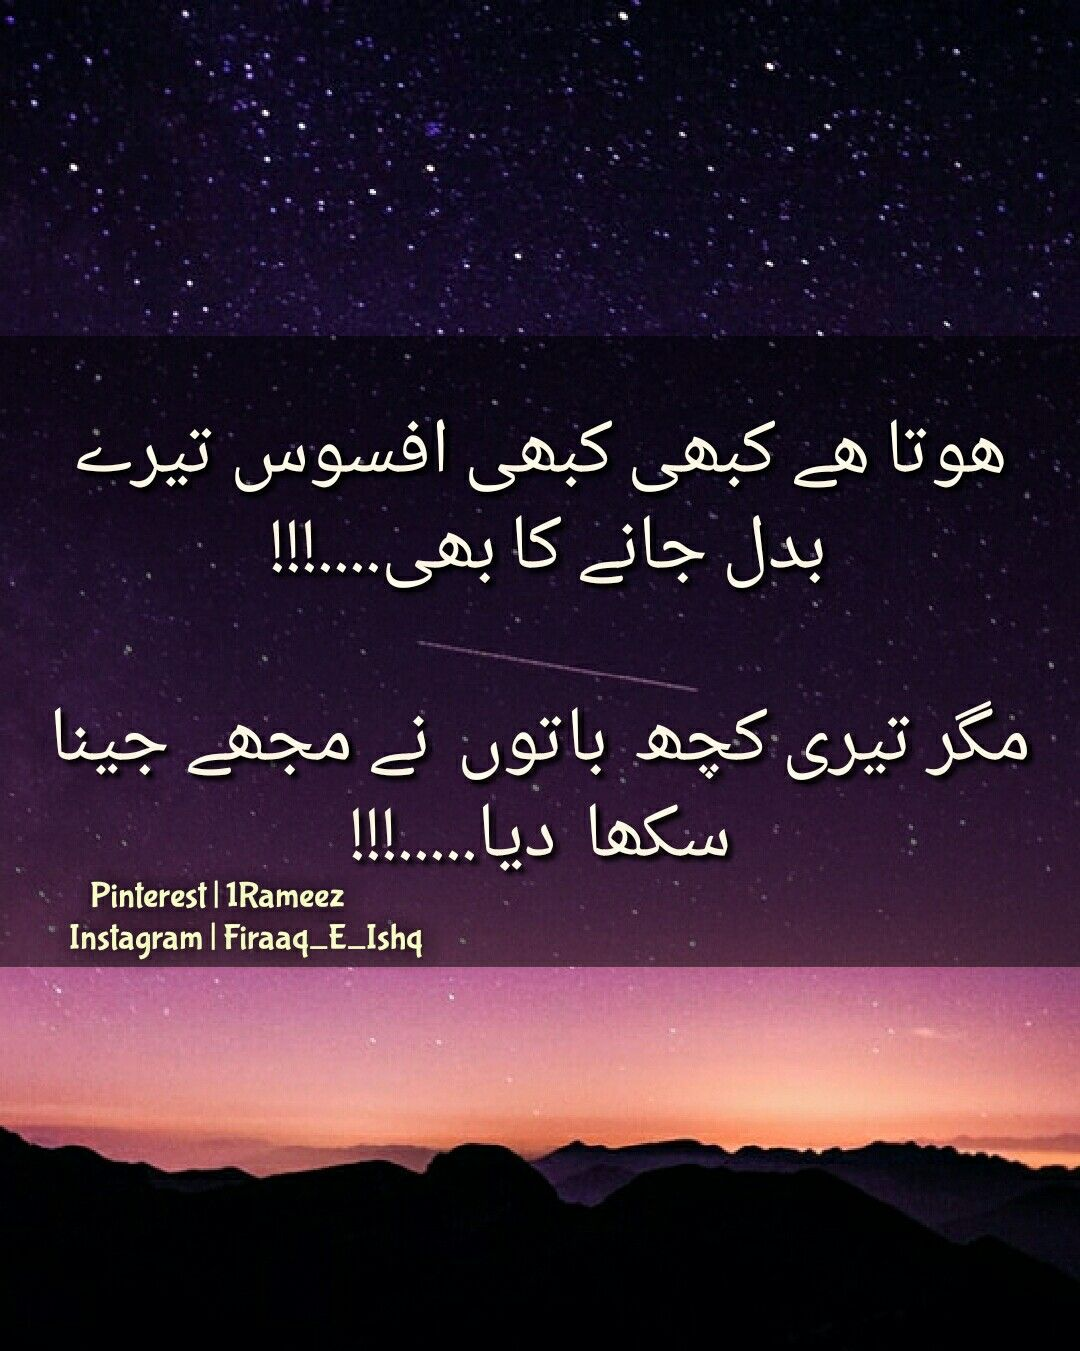 Pin By Areememon On P O I S O N Funny Quotes In Urdu Urdu Funny Quotes Funny Quotes